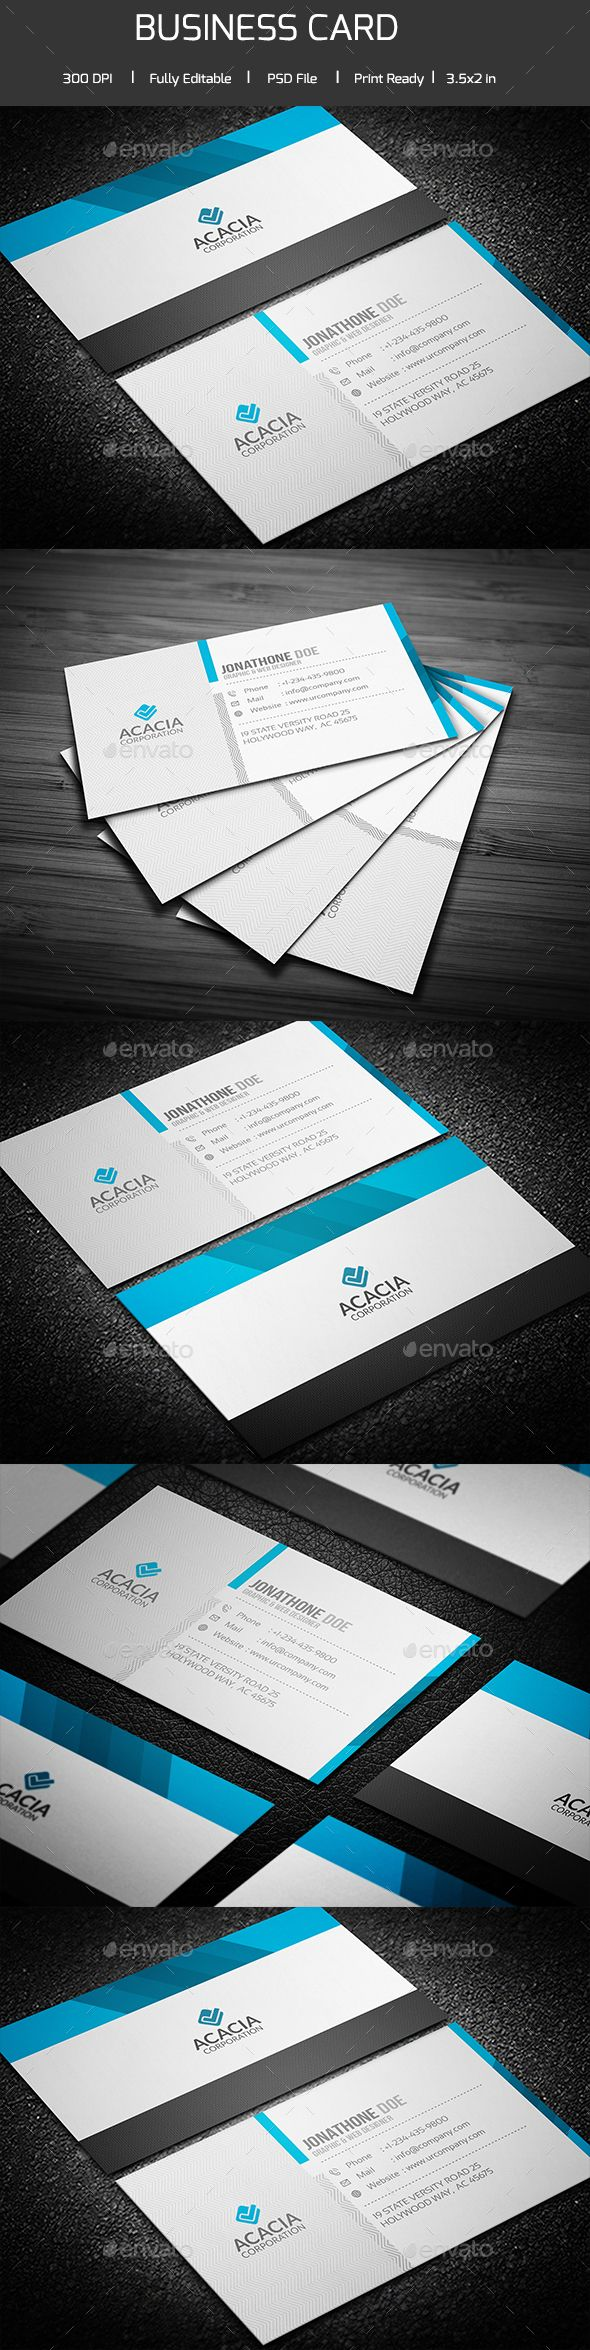 43 Best Business Cards Images On Pinterest Business Cards Carte